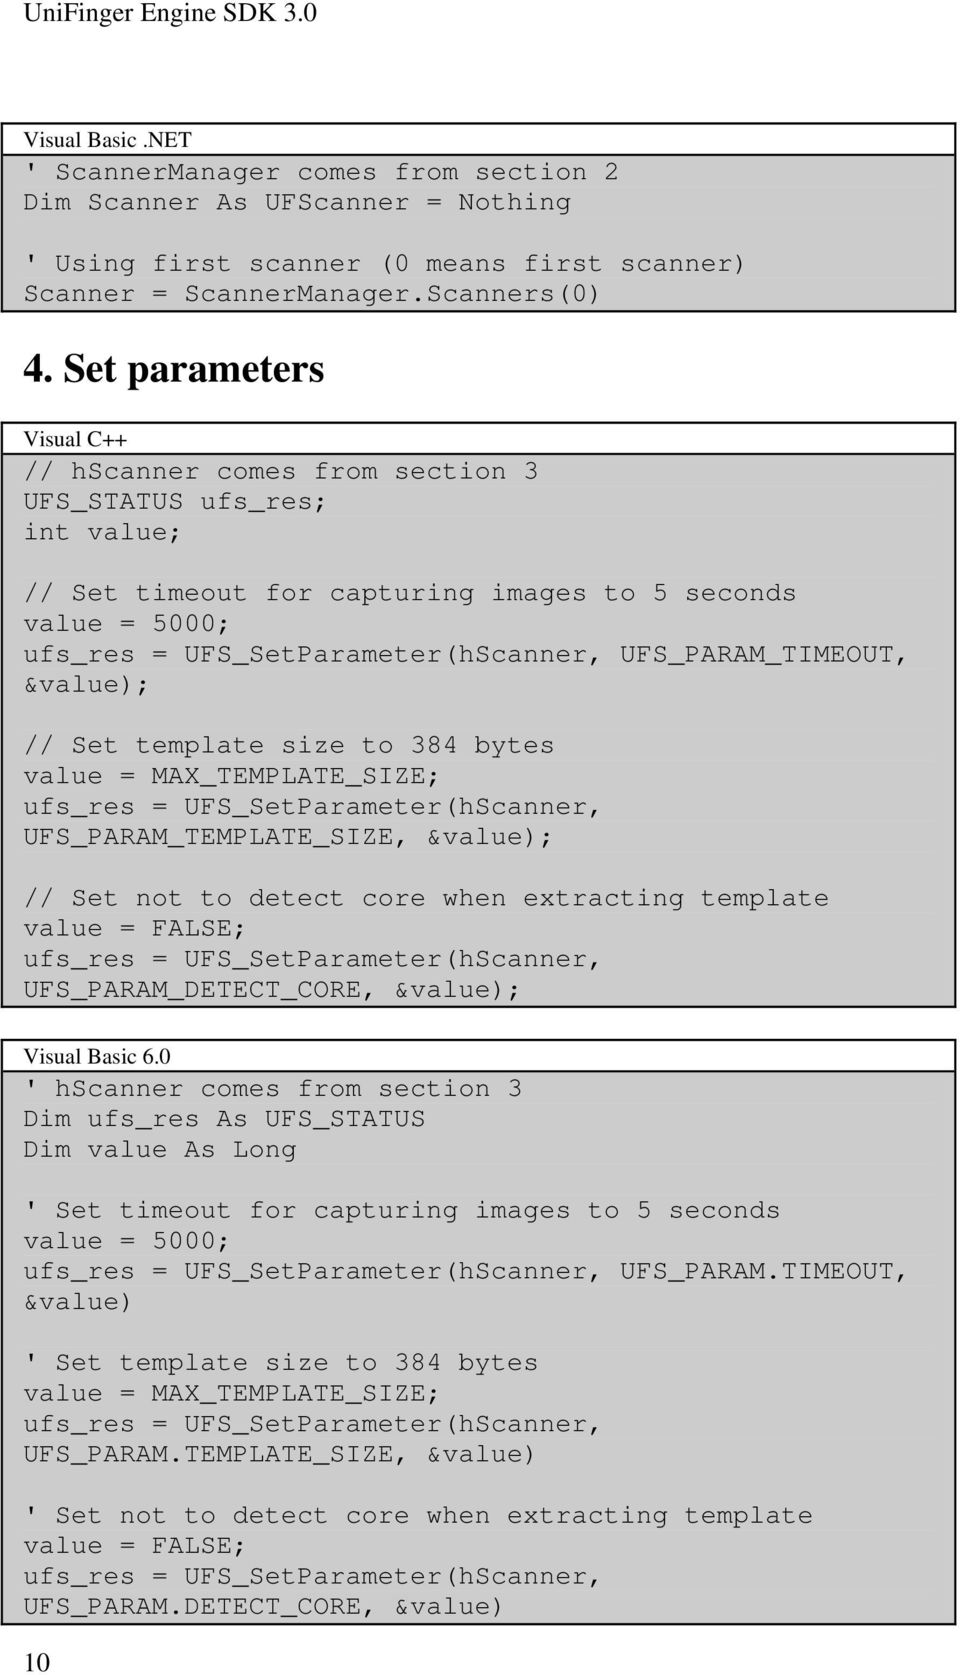 UFS_PARAM_TIMEOUT, &value); // Set template size to 384 bytes value = MAX_TEMPLATE_SIZE; ufs_res = UFS_SetParameter(hScanner, UFS_PARAM_TEMPLATE_SIZE, &value); // Set not to detect core when